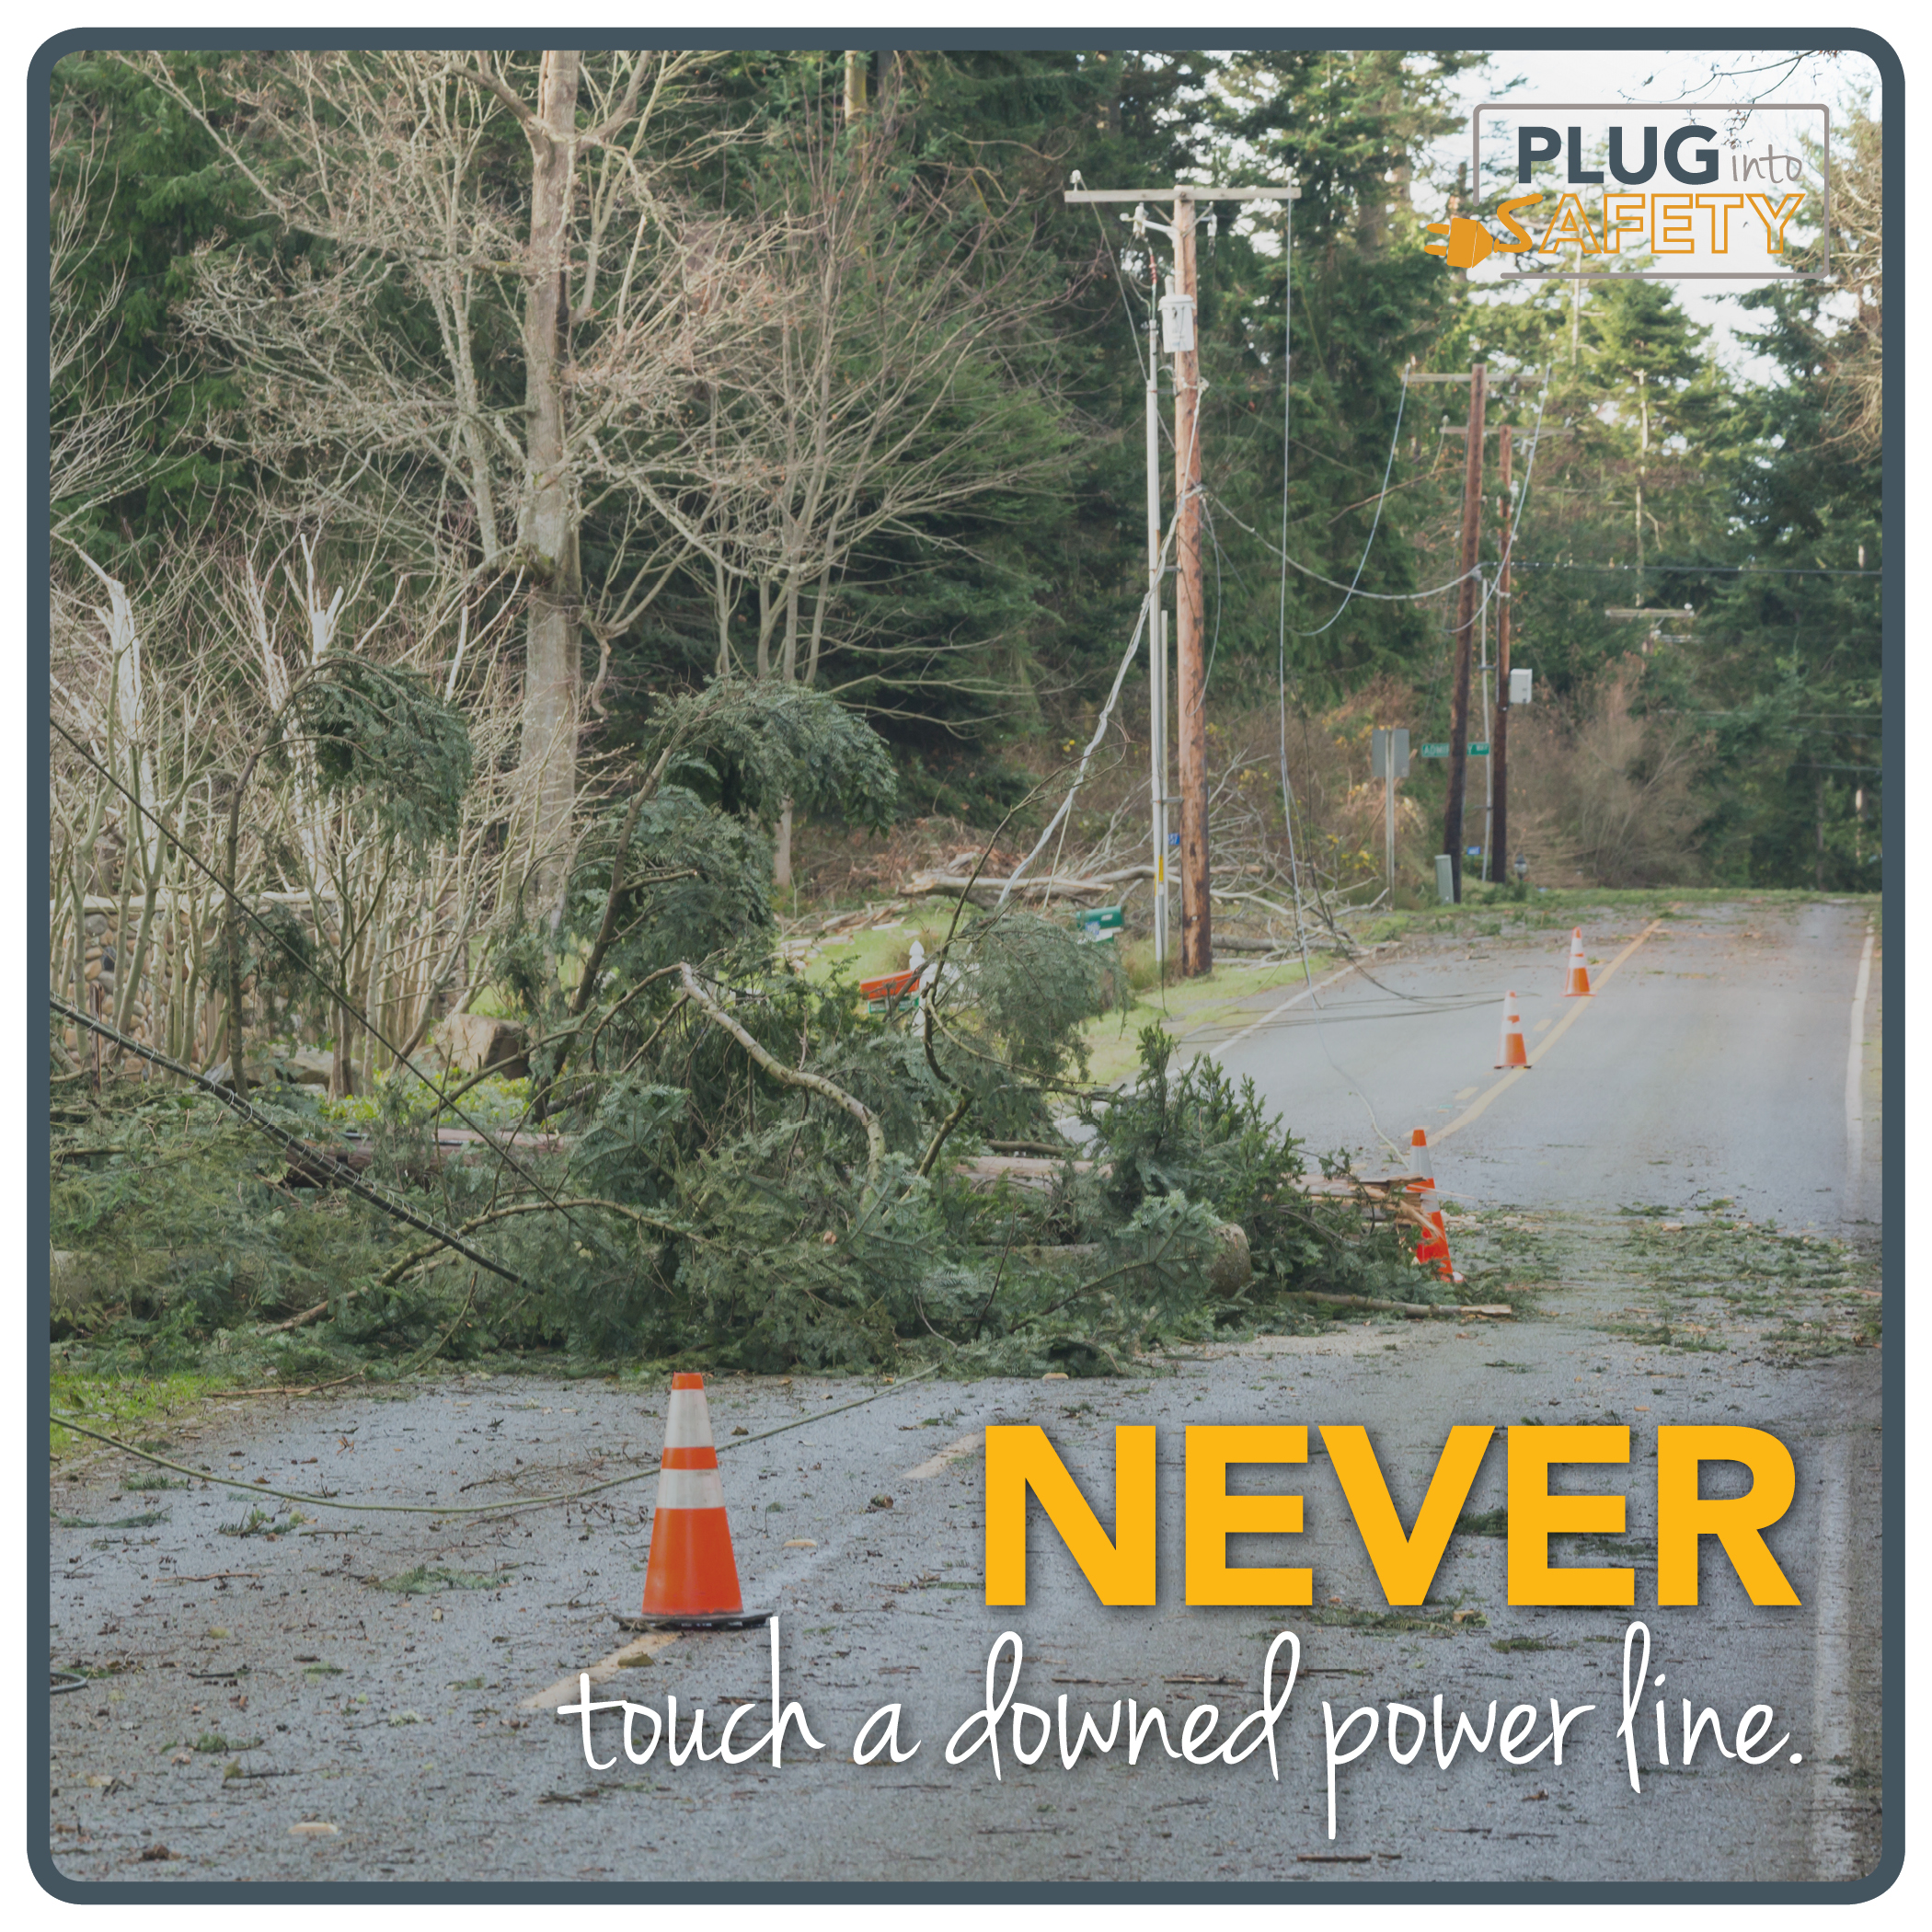 Never touch a downed power line.